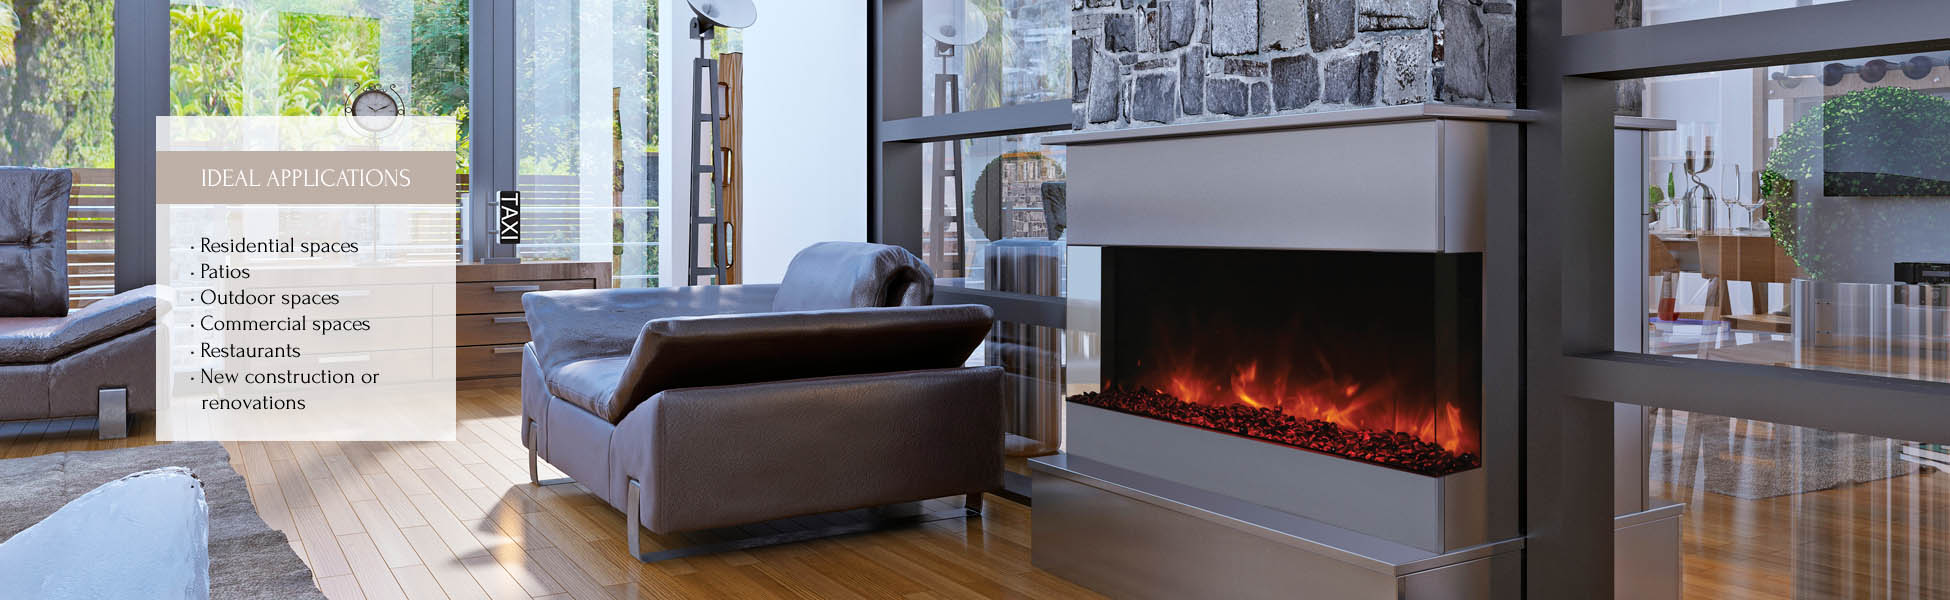 Amantii elecltric fireplace